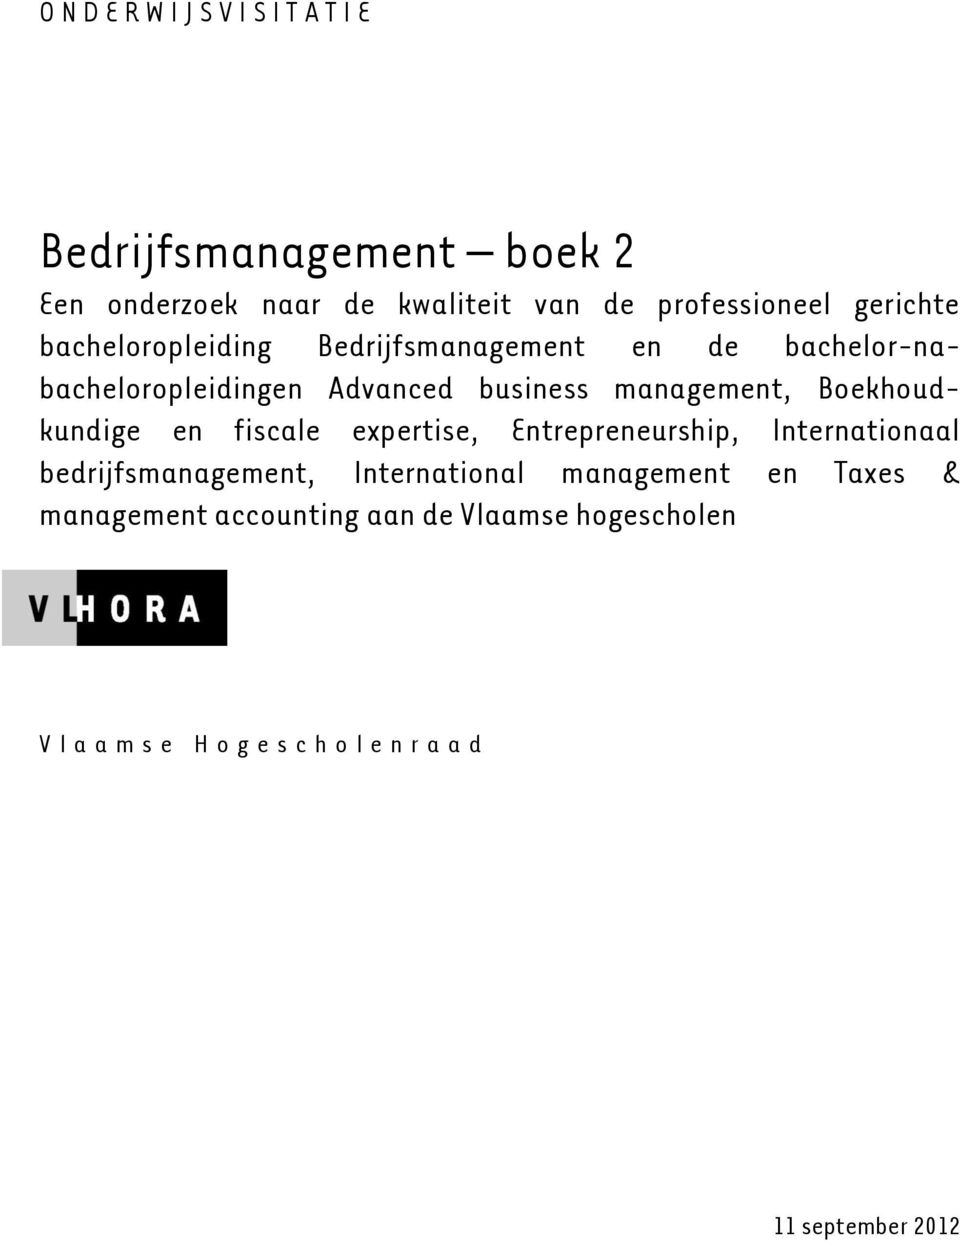 Boekhoudkundige en fiscale expertise, Entrepreneurship, Internationaal bedrijfsmanagement, International management